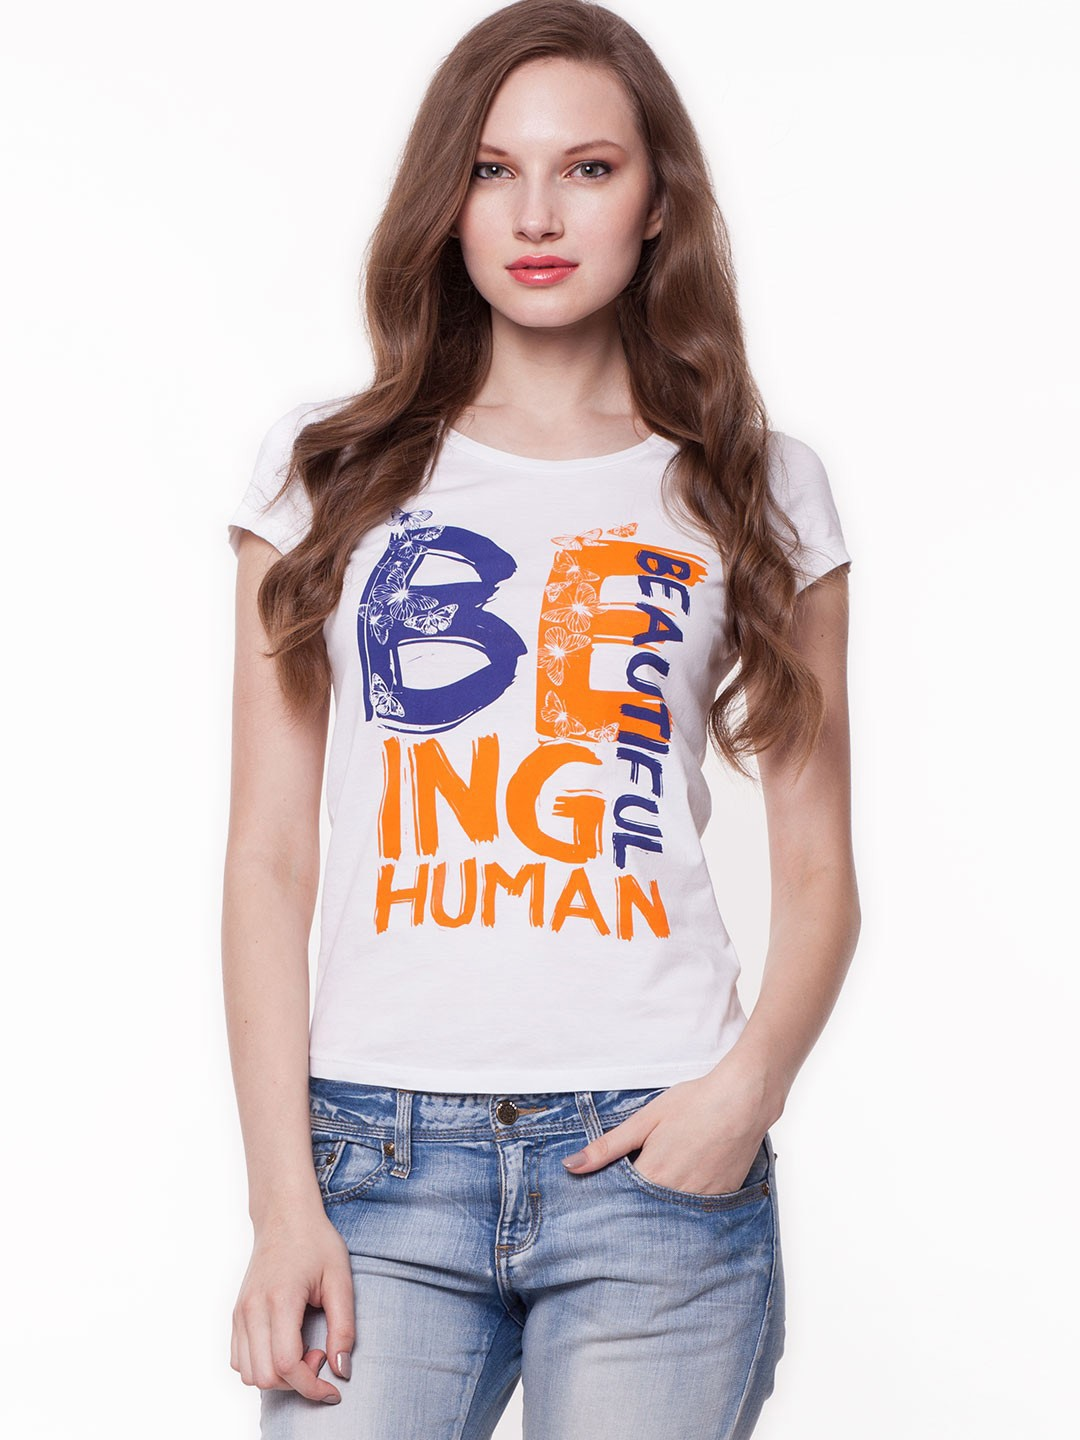 Buy being human slogan print tee for women women 39 s white for Being human t shirts buy online india